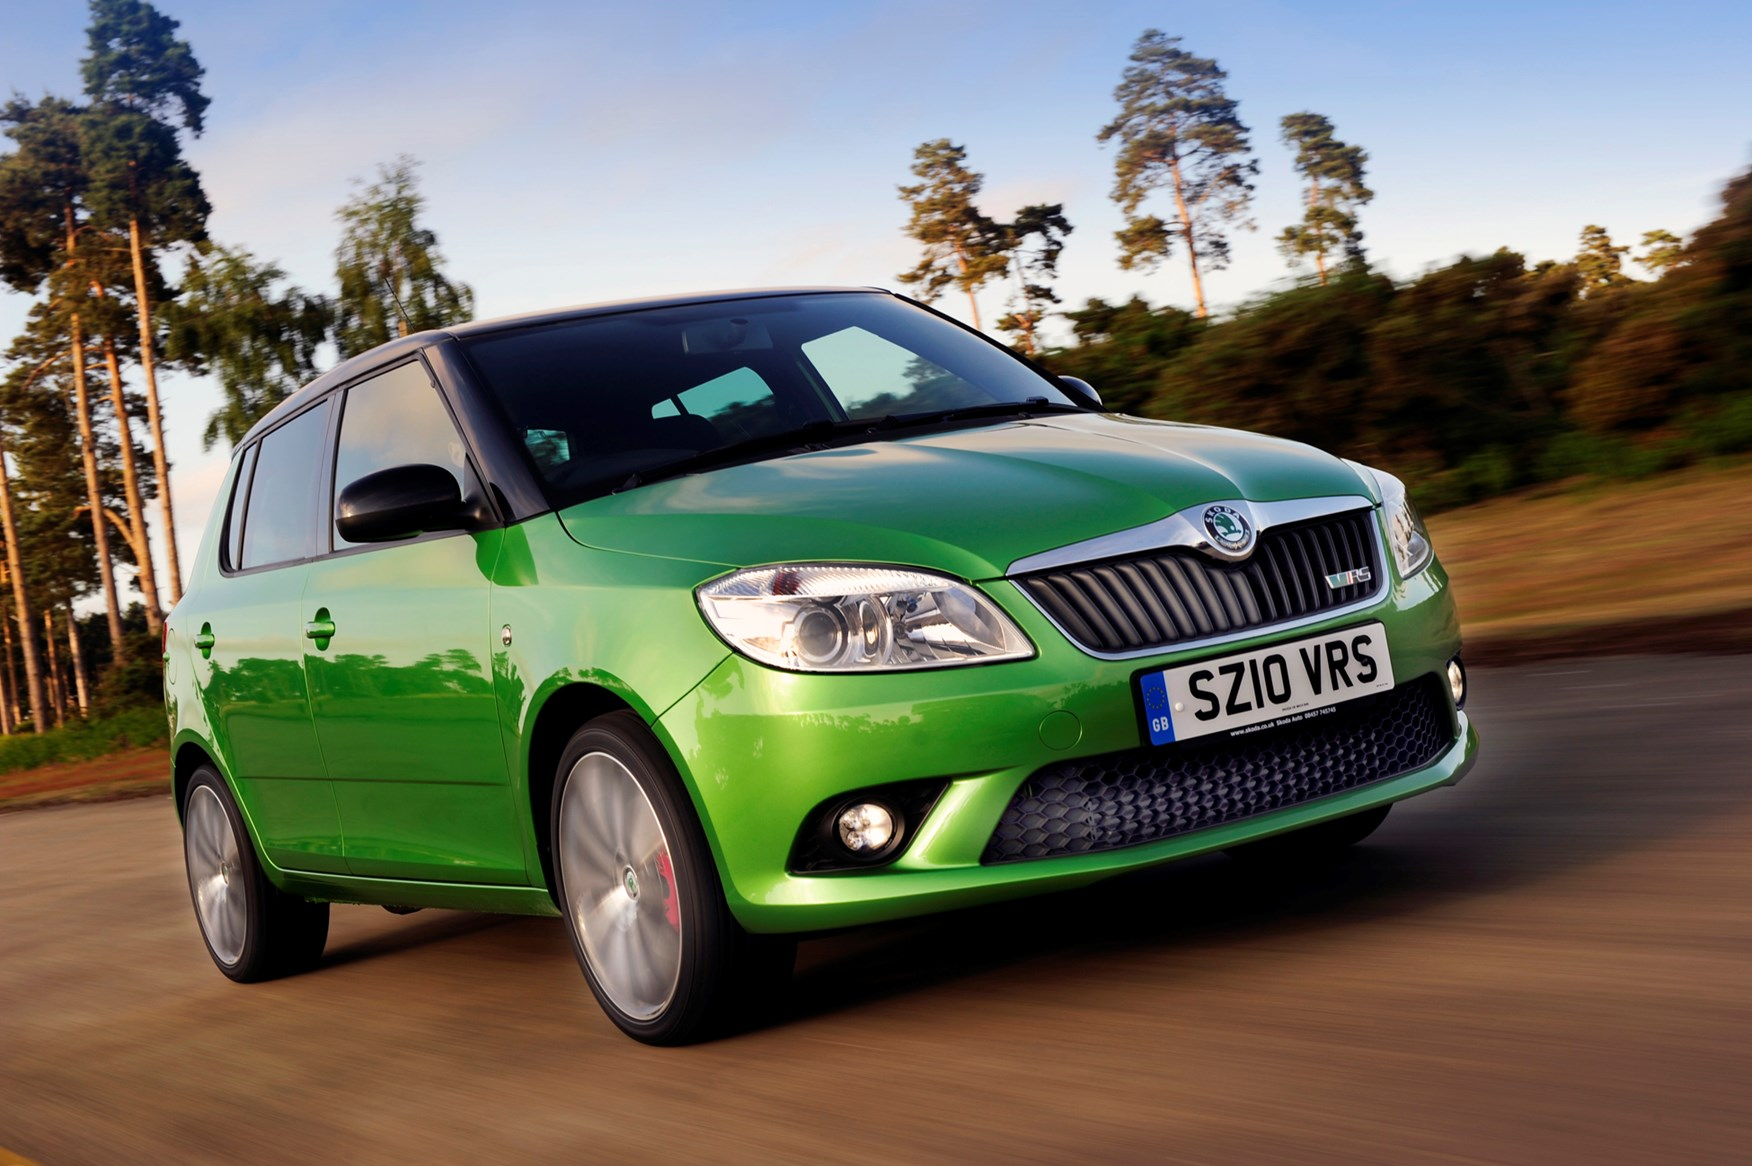 skoda fabia vrs review 2010 2014 parkers autos post. Black Bedroom Furniture Sets. Home Design Ideas